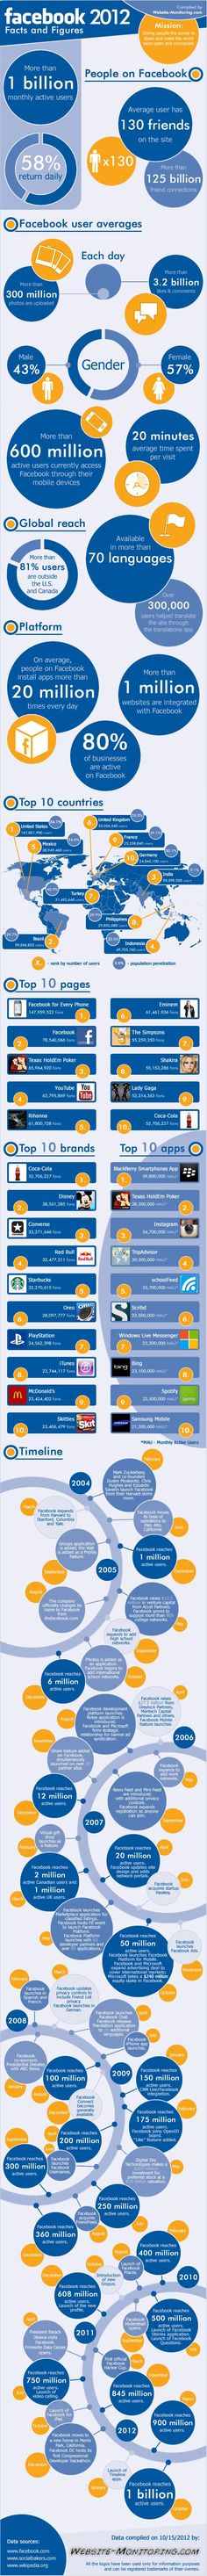 #Facebook 2012 Facts and Figures